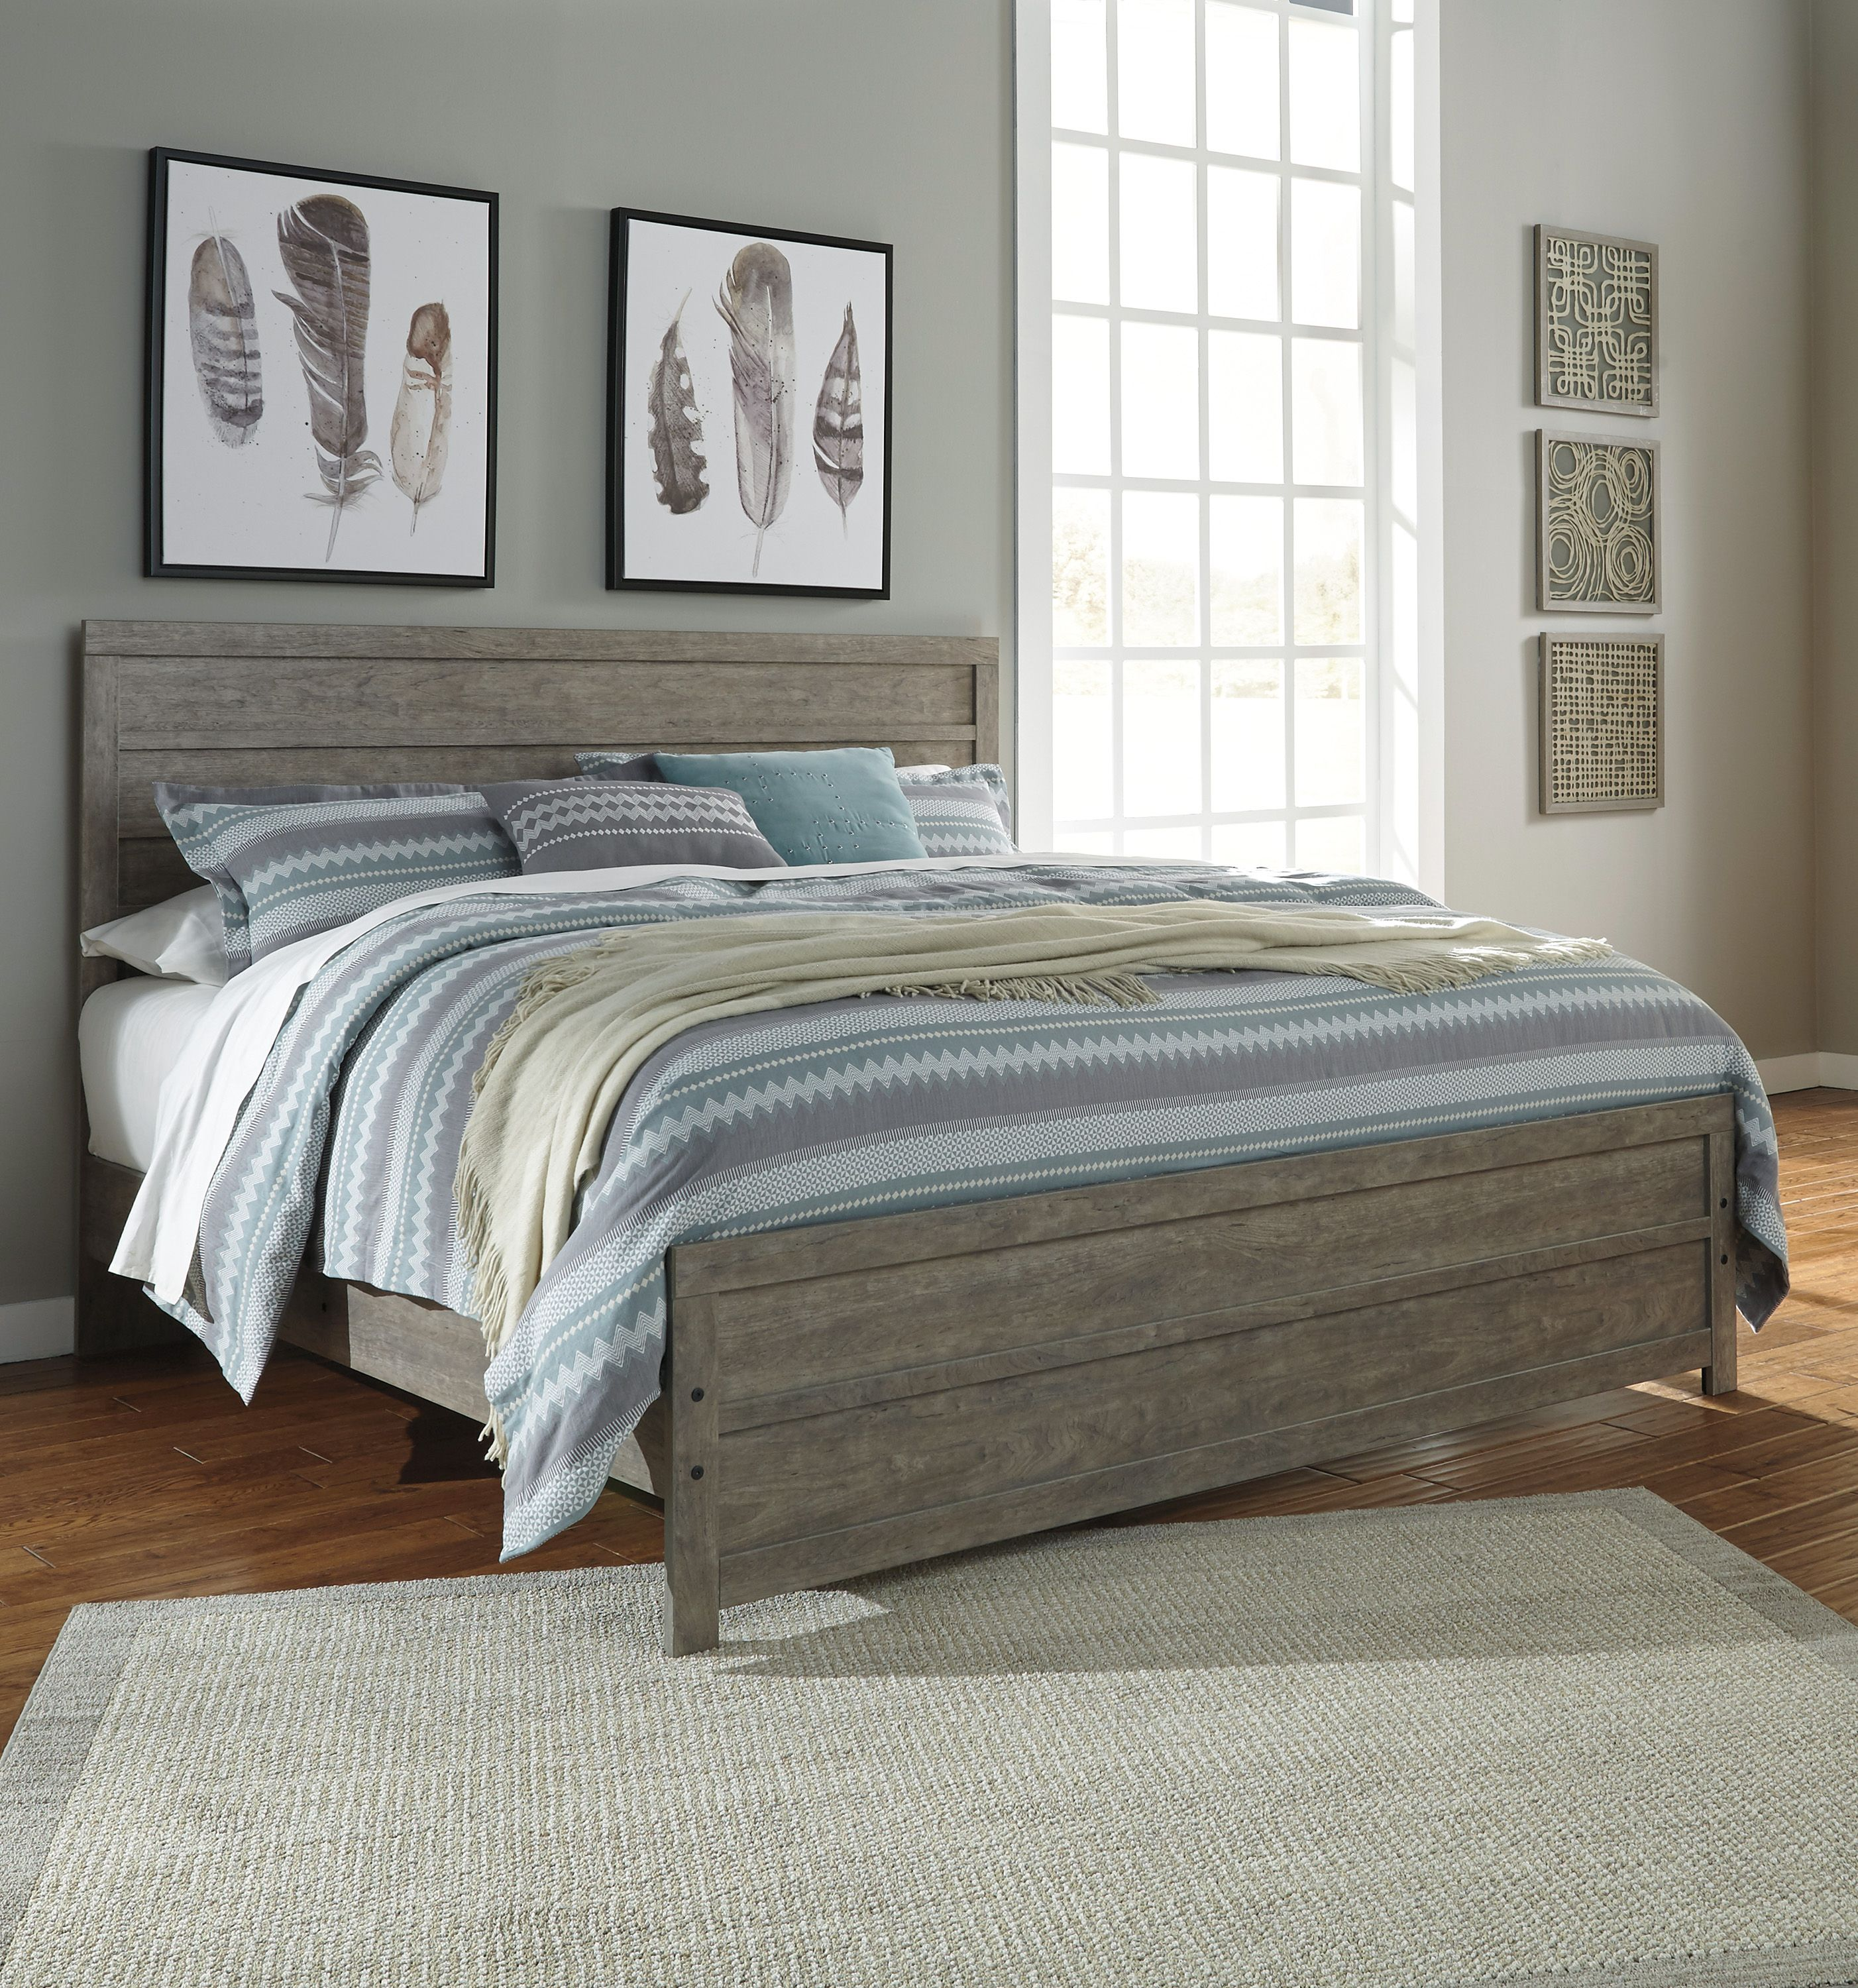 Culverbach 3 Piece Queen Panel Bed Bed, Panel bed, Panel